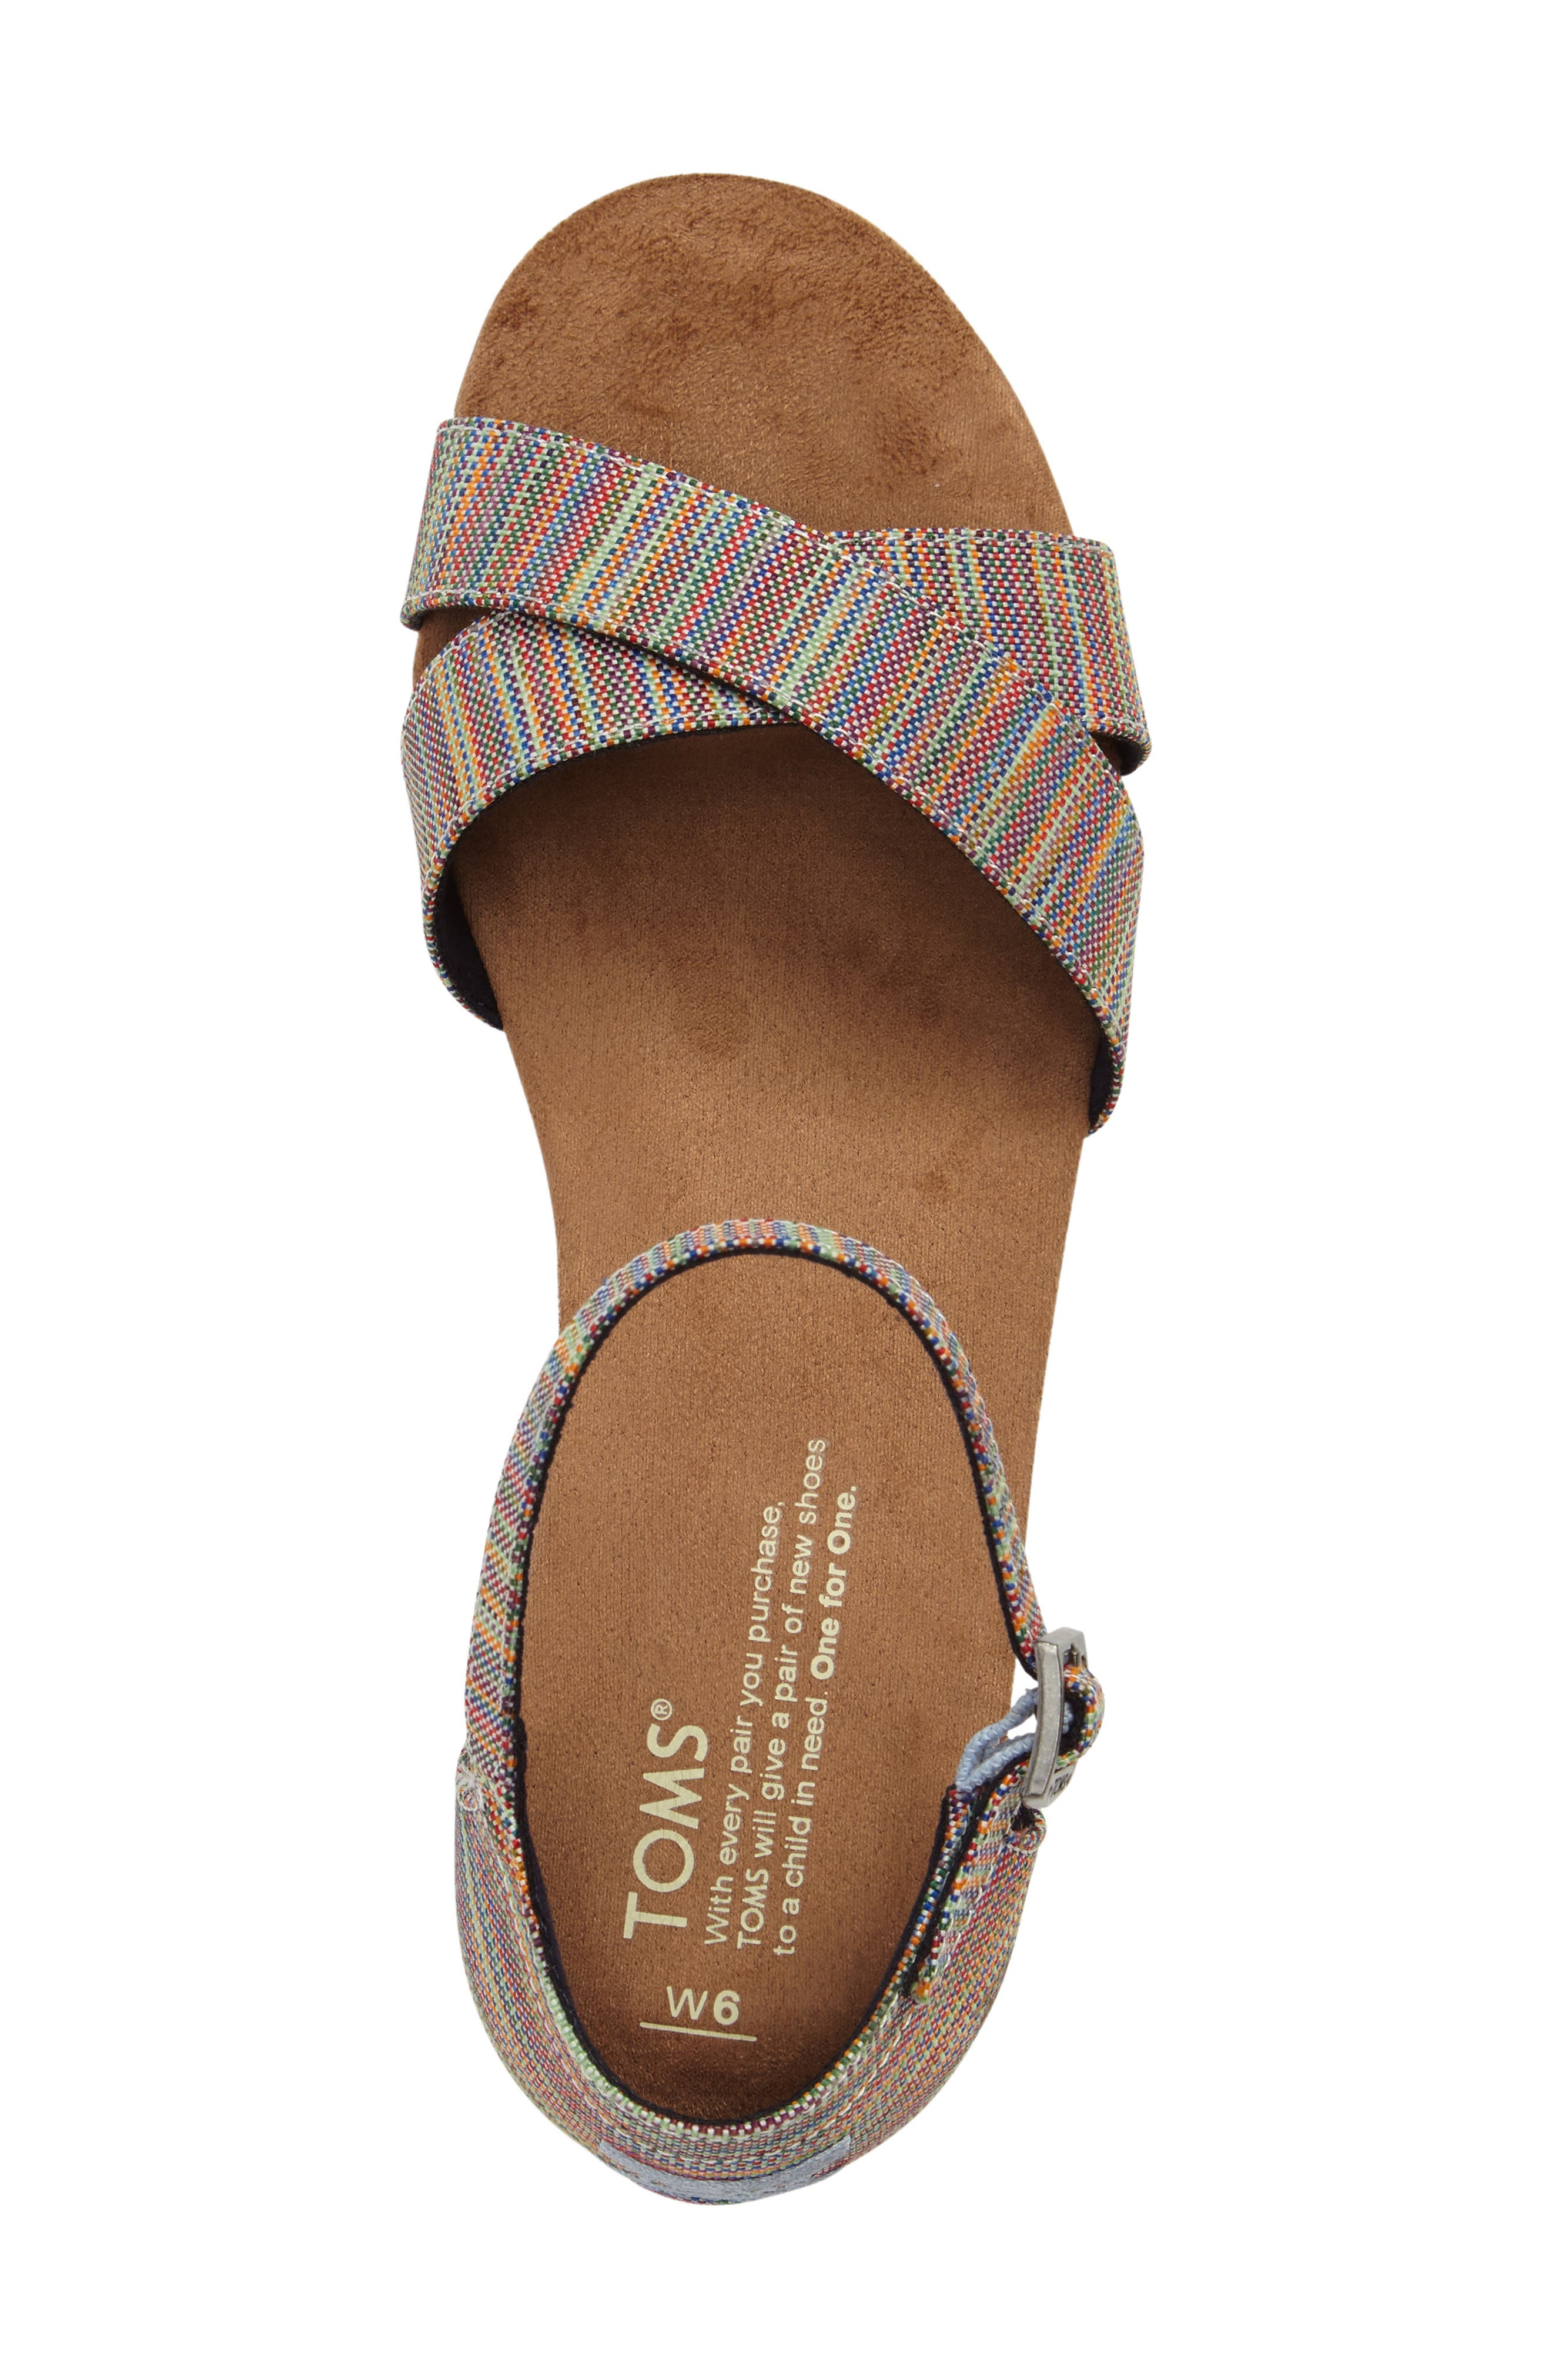 Correa Sandal,                             Alternate thumbnail 5, color,                             Blue Multi